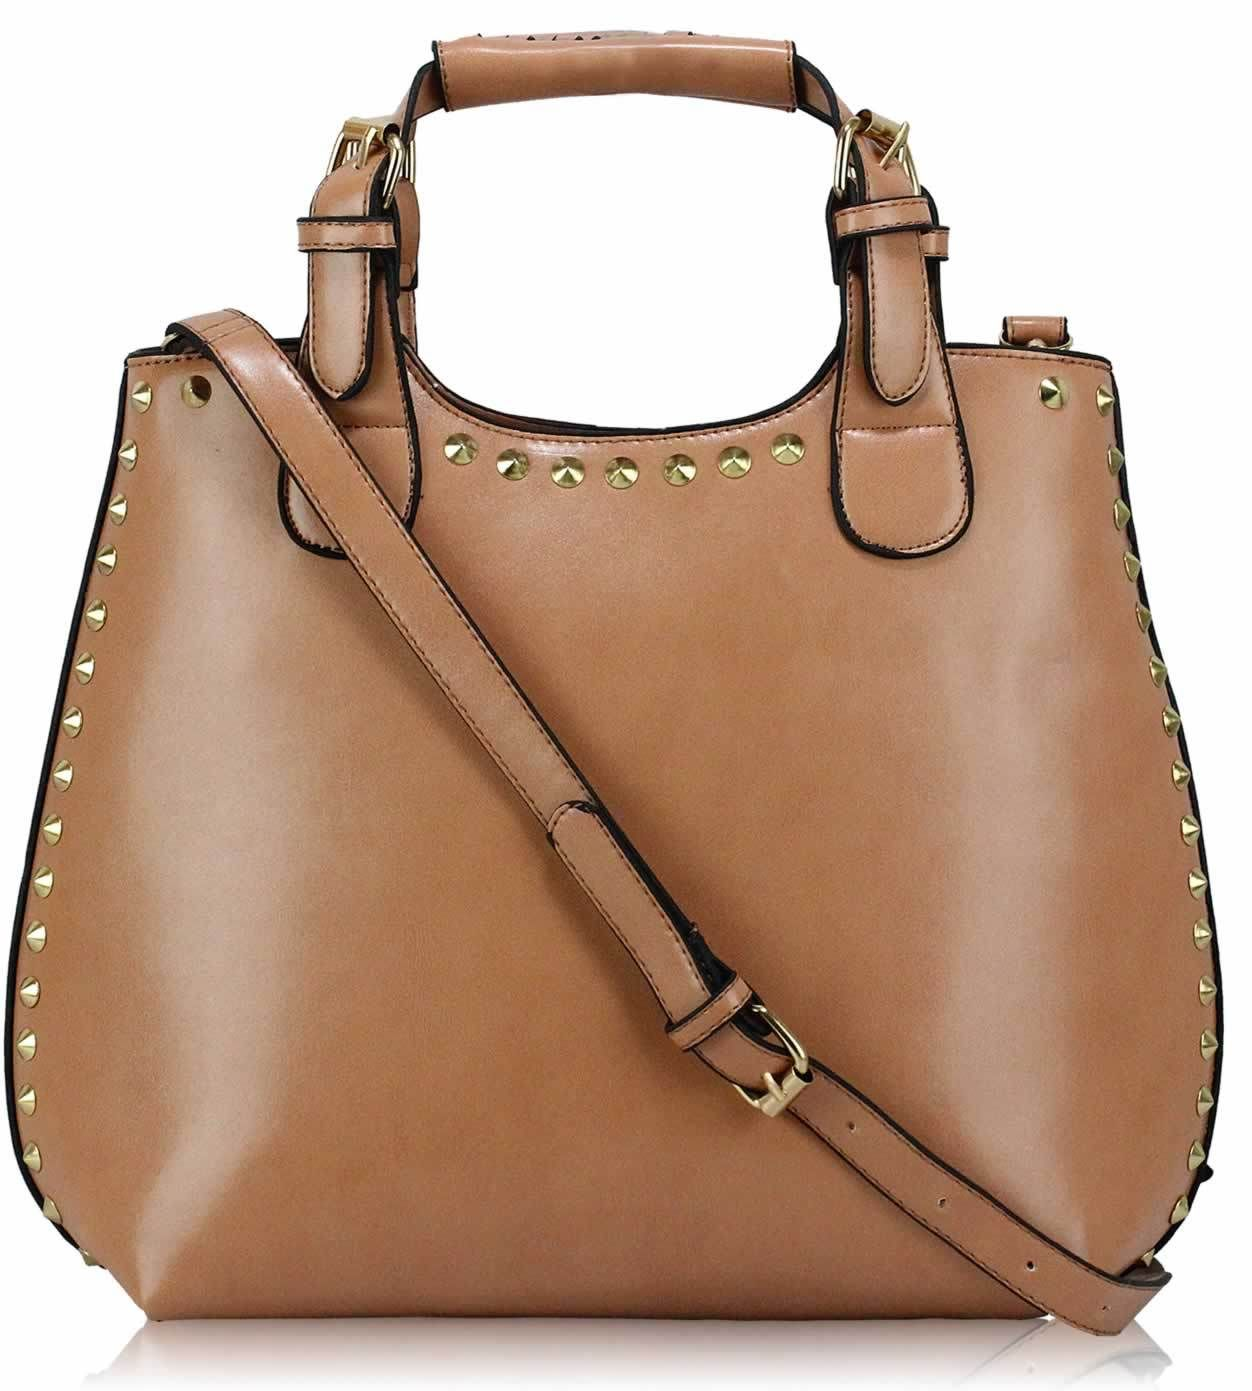 Satchels: Free Shipping on orders over $45 at dolcehouse.ml - Your Online Shop By Style Store! Get 5% in rewards with Club O! Dasein Briefcase-Style Satchel Handbag with Matching Wallet. Free Shipping & Returns with Club O Gold* 22 Reviews. More Options. Quick View $ 99 - $